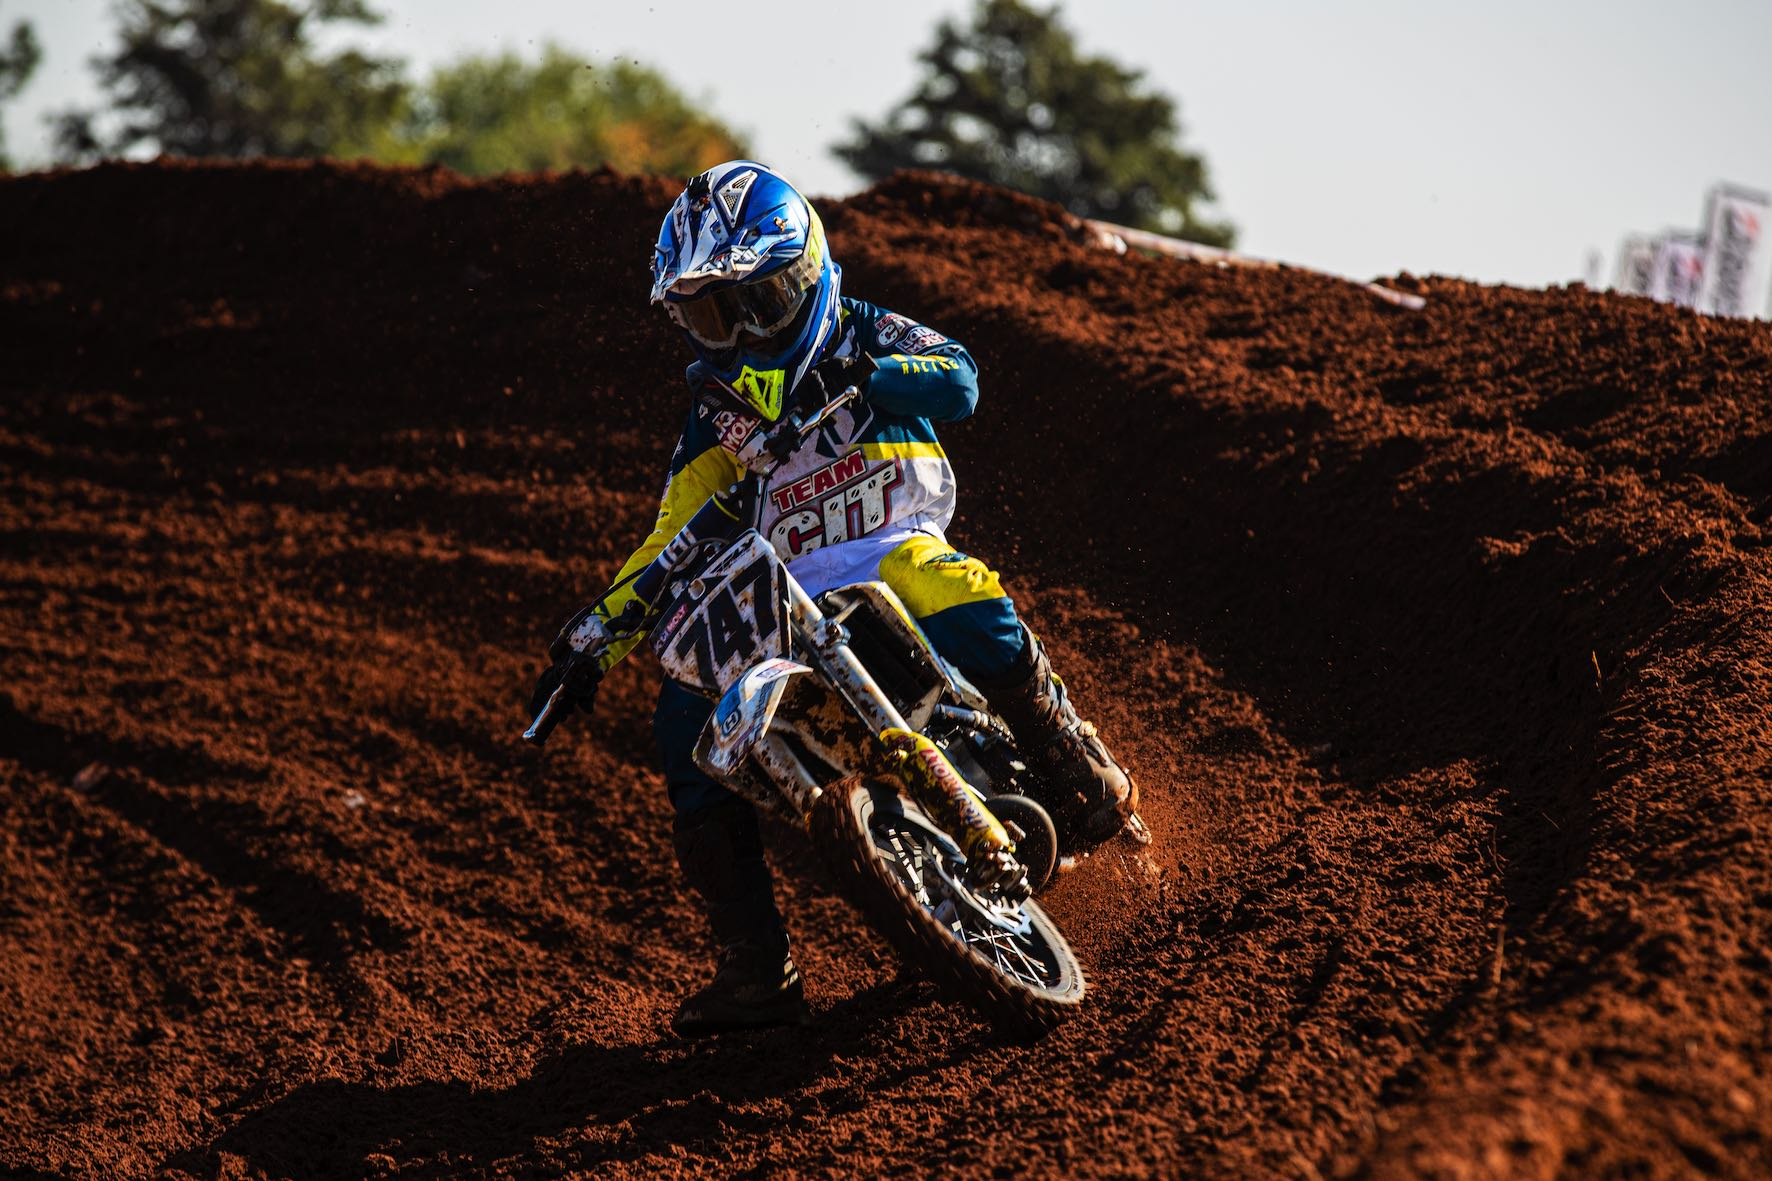 Jordan van Wyk racing his way to victory at Round 3 of the SA Motocross Nationals